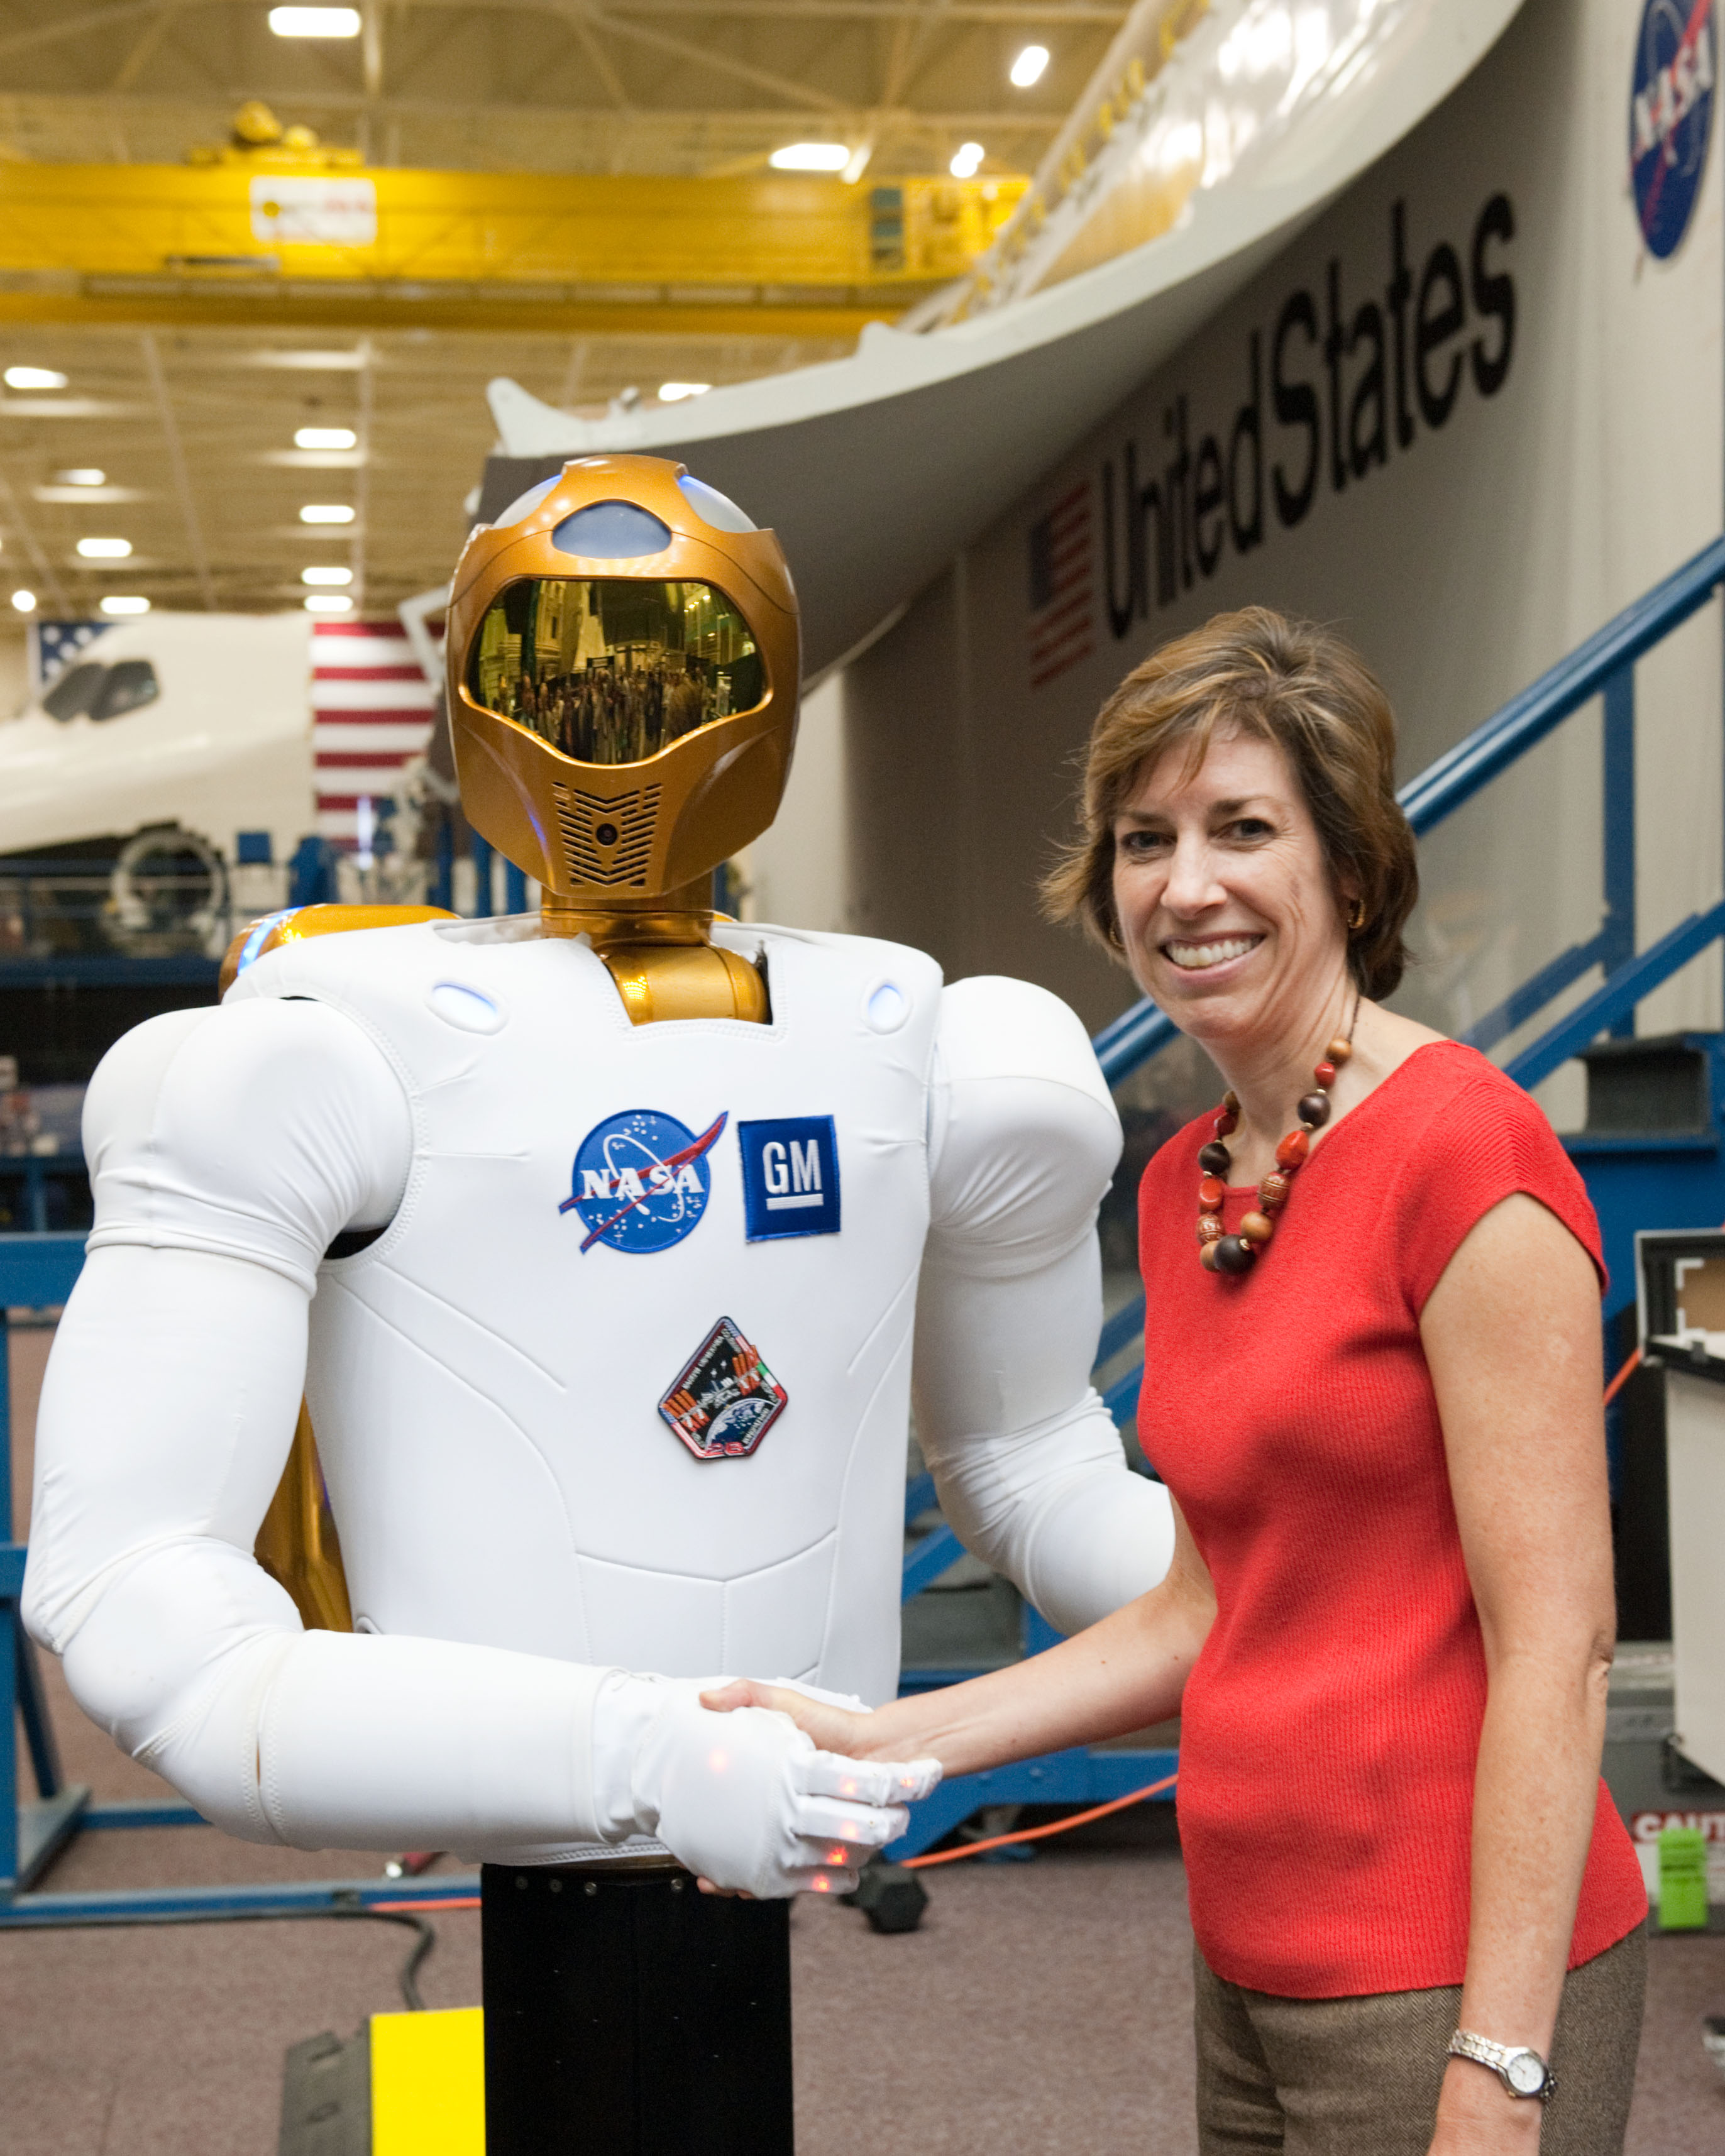 a biography of ellen ochoa Ellen ochoa, (born may 10, 1958, los angeles, california, us), american  astronaut and administrator who was the first hispanic woman to travel into  space.